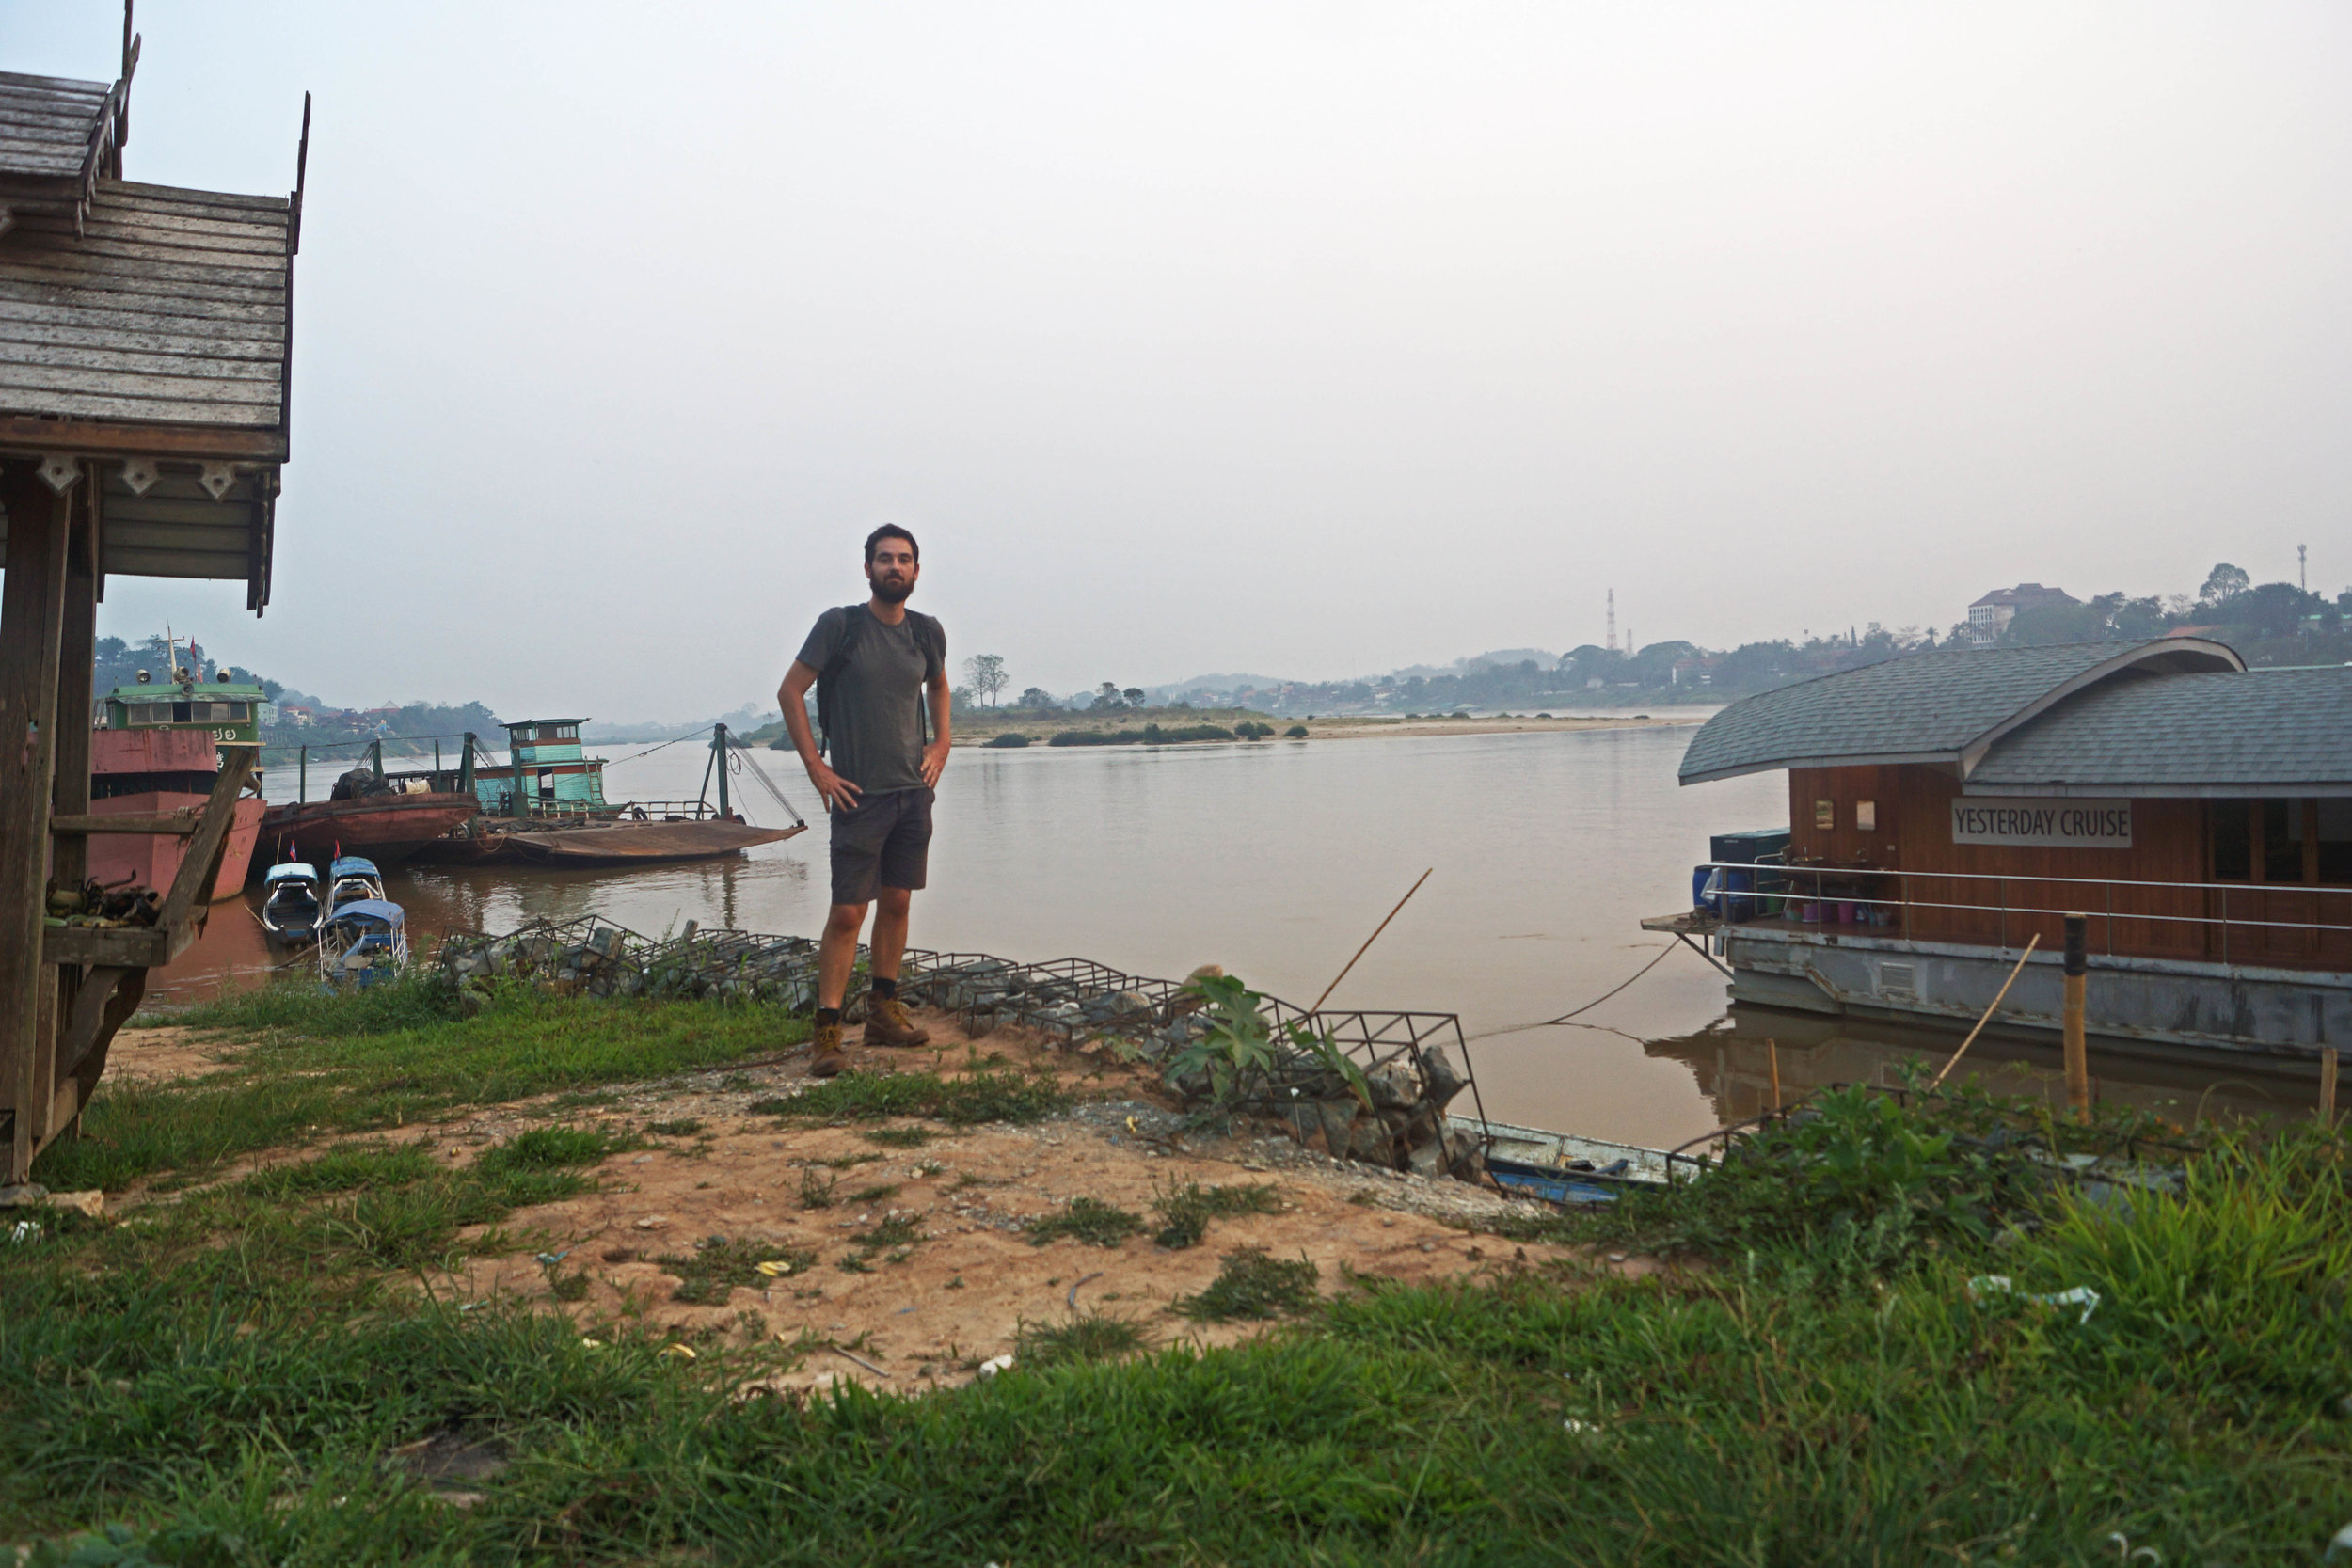 On the banks of the Mekong River in Huay Xai, Laos. Thailand in the background on the other side of the shore.